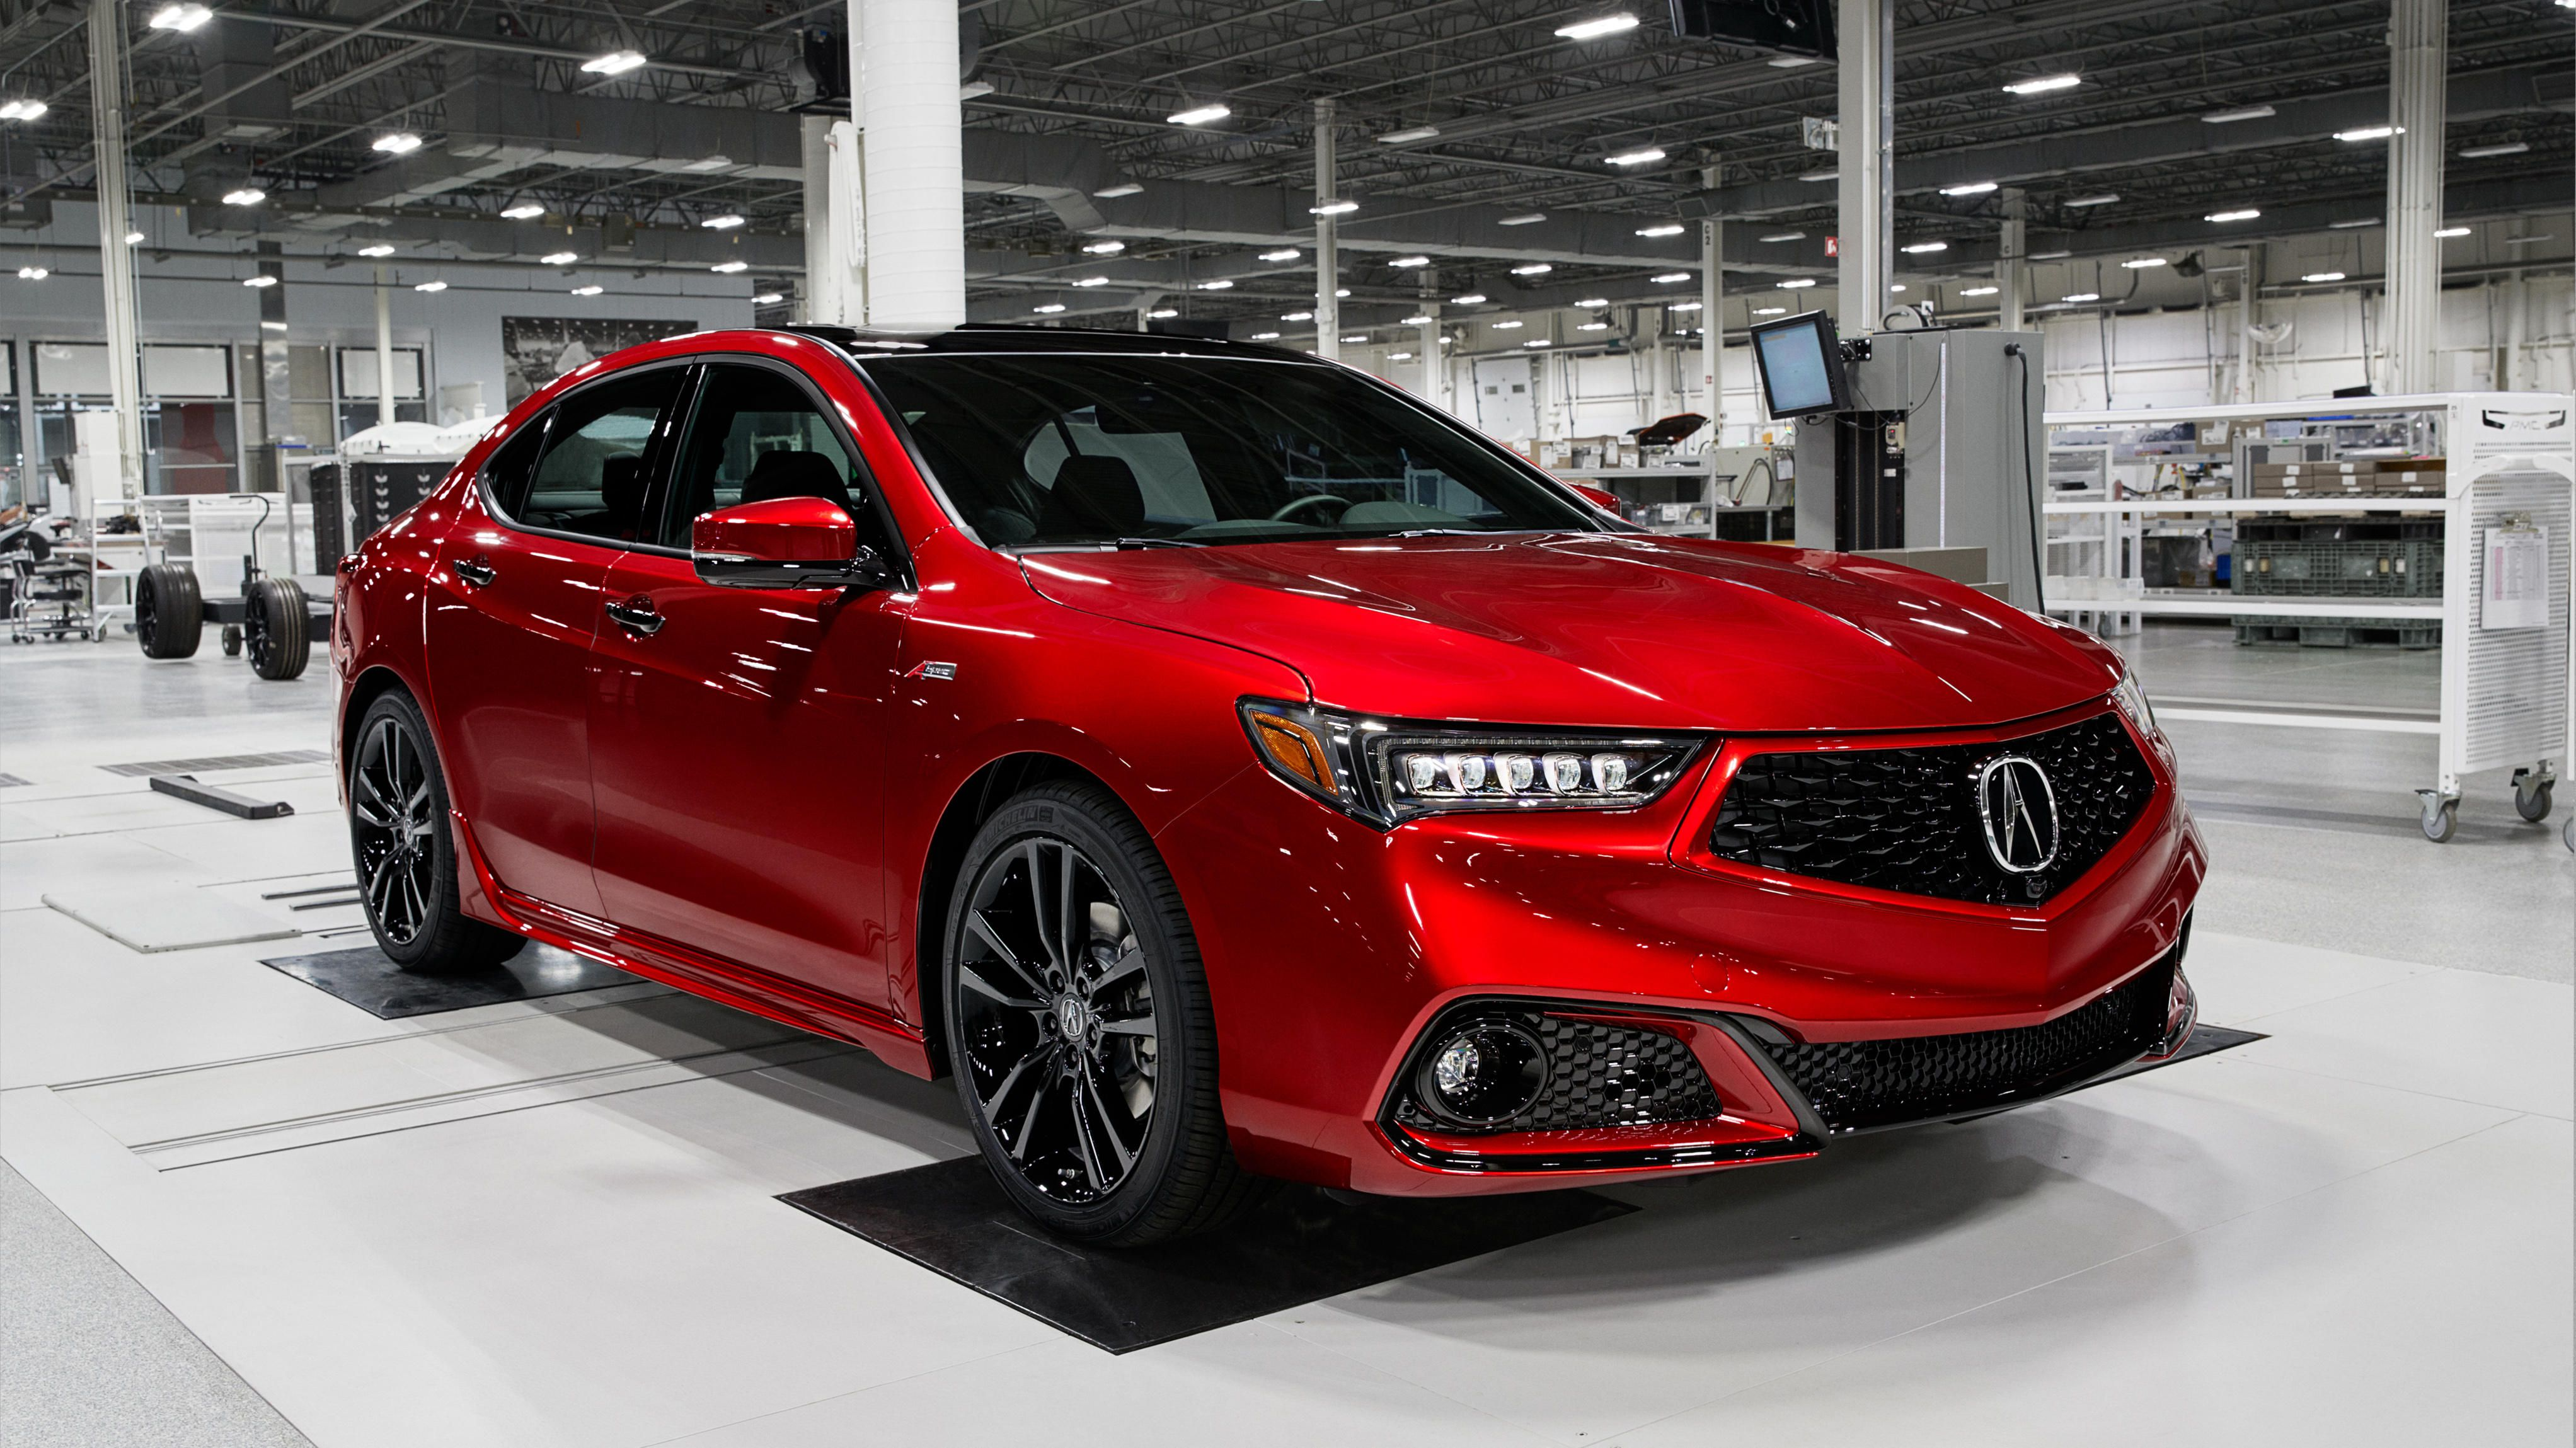 72 Best 2020 Acura TLX Review